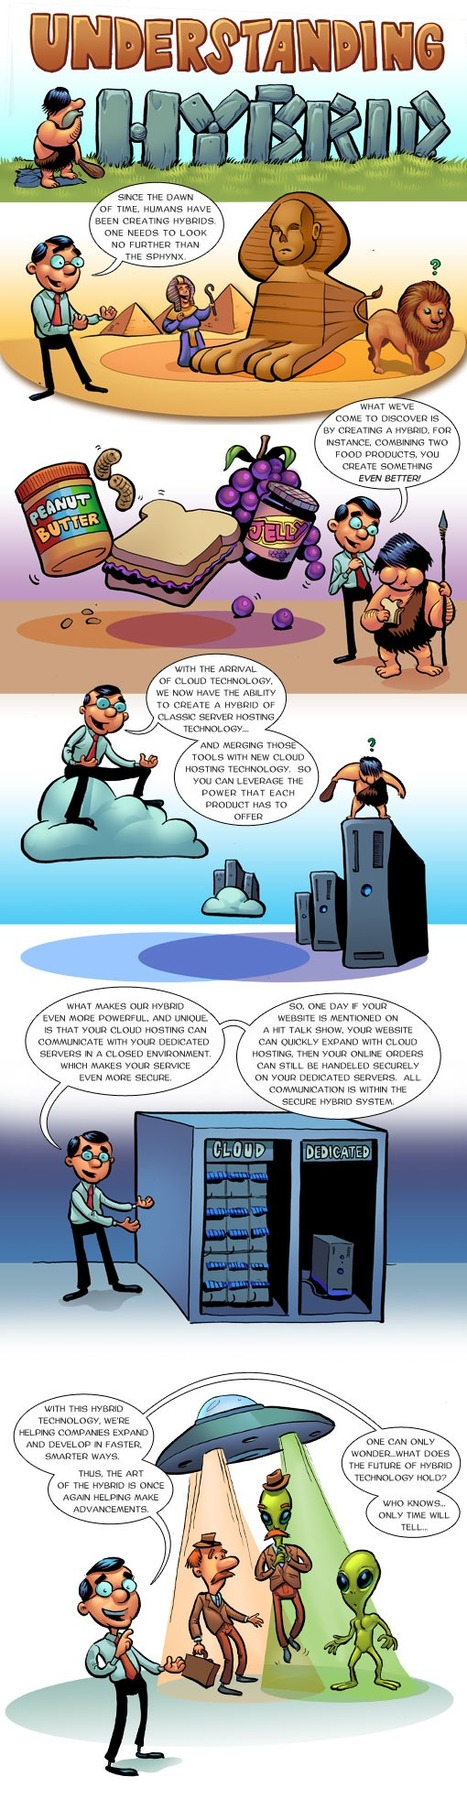 Understanding The Hybrid Cloud [Infographic] | Design for Living... | Scoop.it